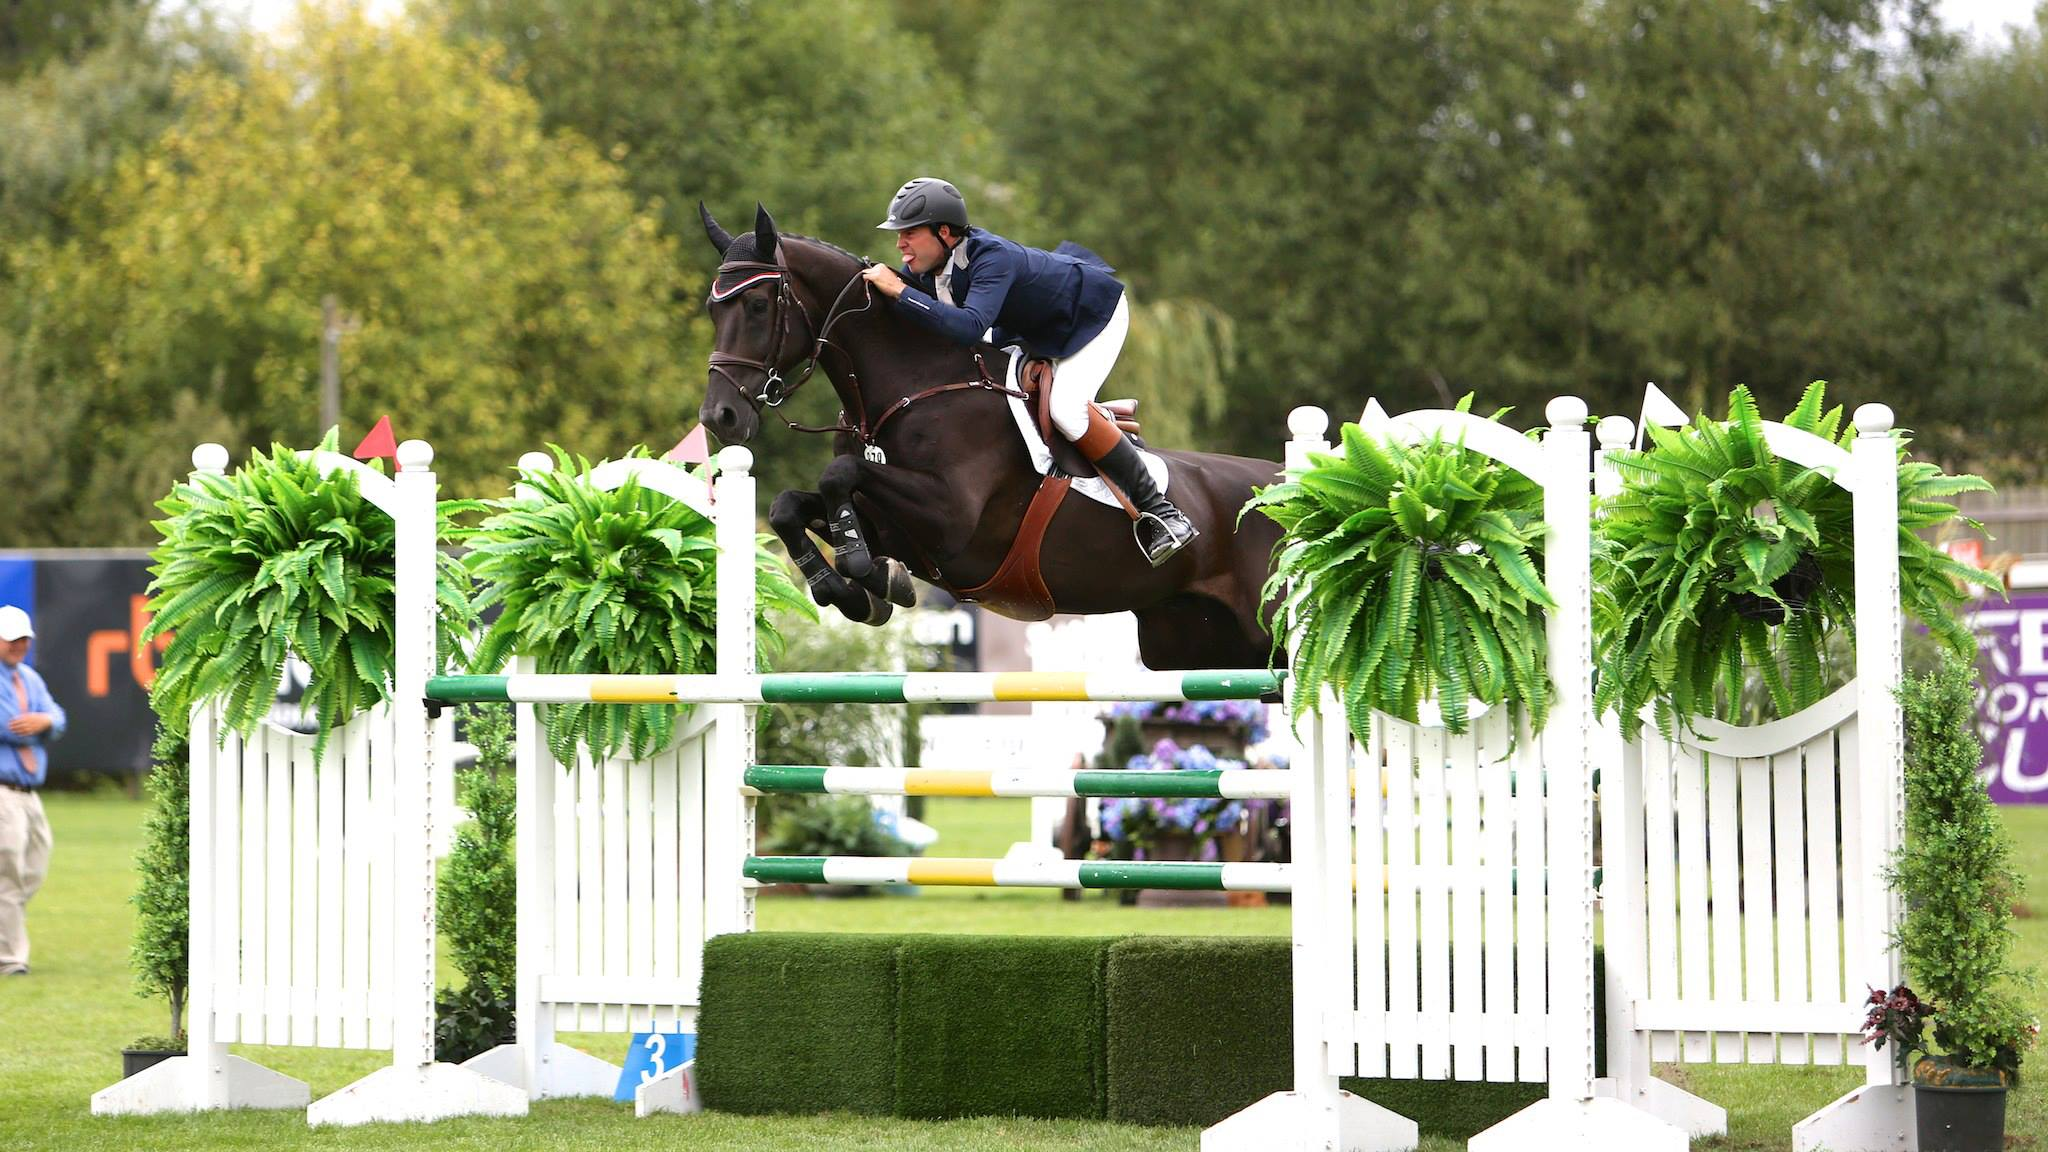 Jack Towell's son Hardin, a successful grand prix competitor, is now a full-time trainer based in Wellington, Florida.